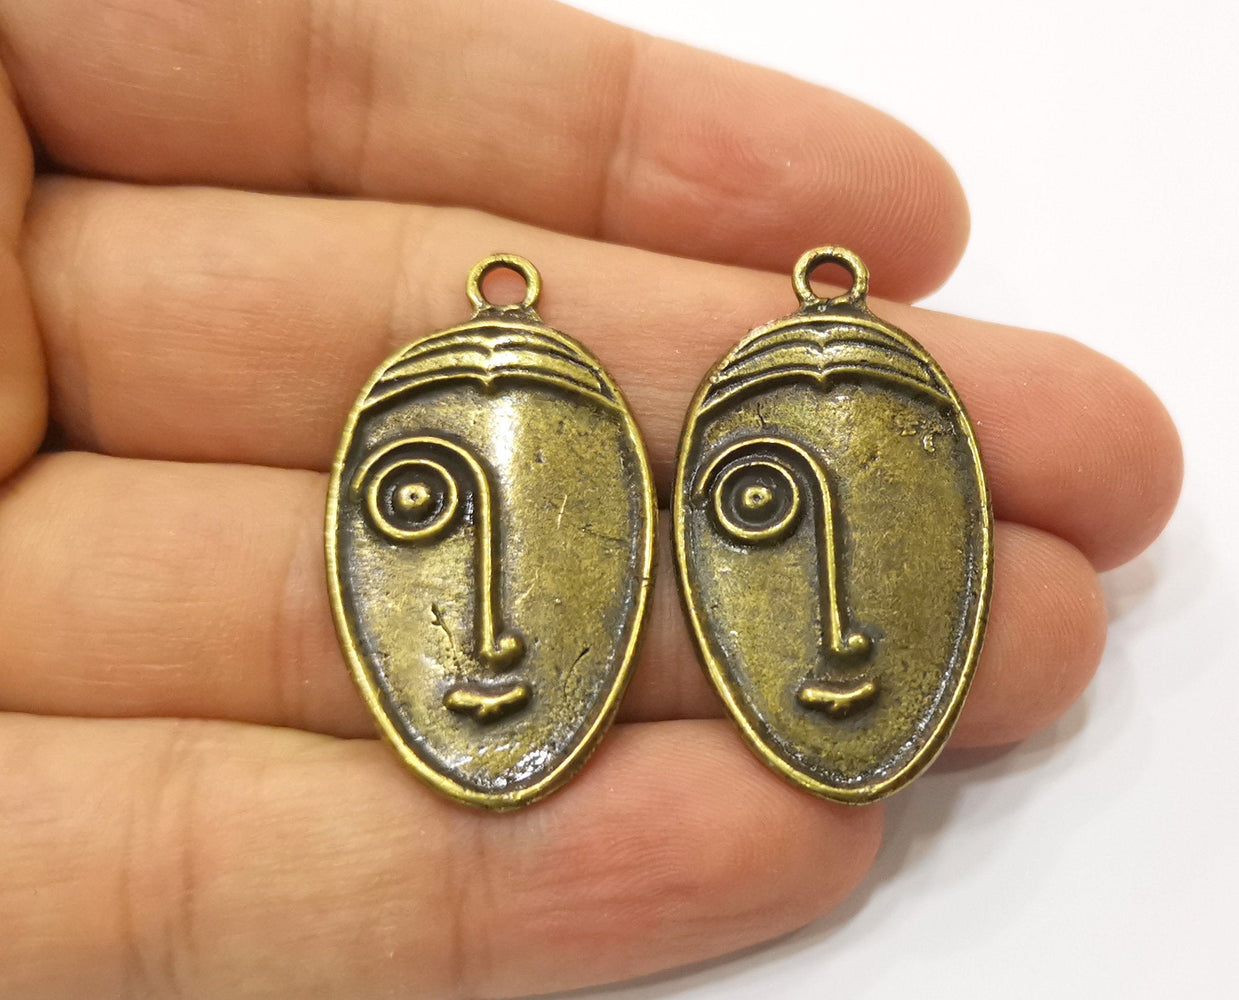 2 Antique Bronze Charm Antique Bronze Plated Charm (38x22mm) G19320